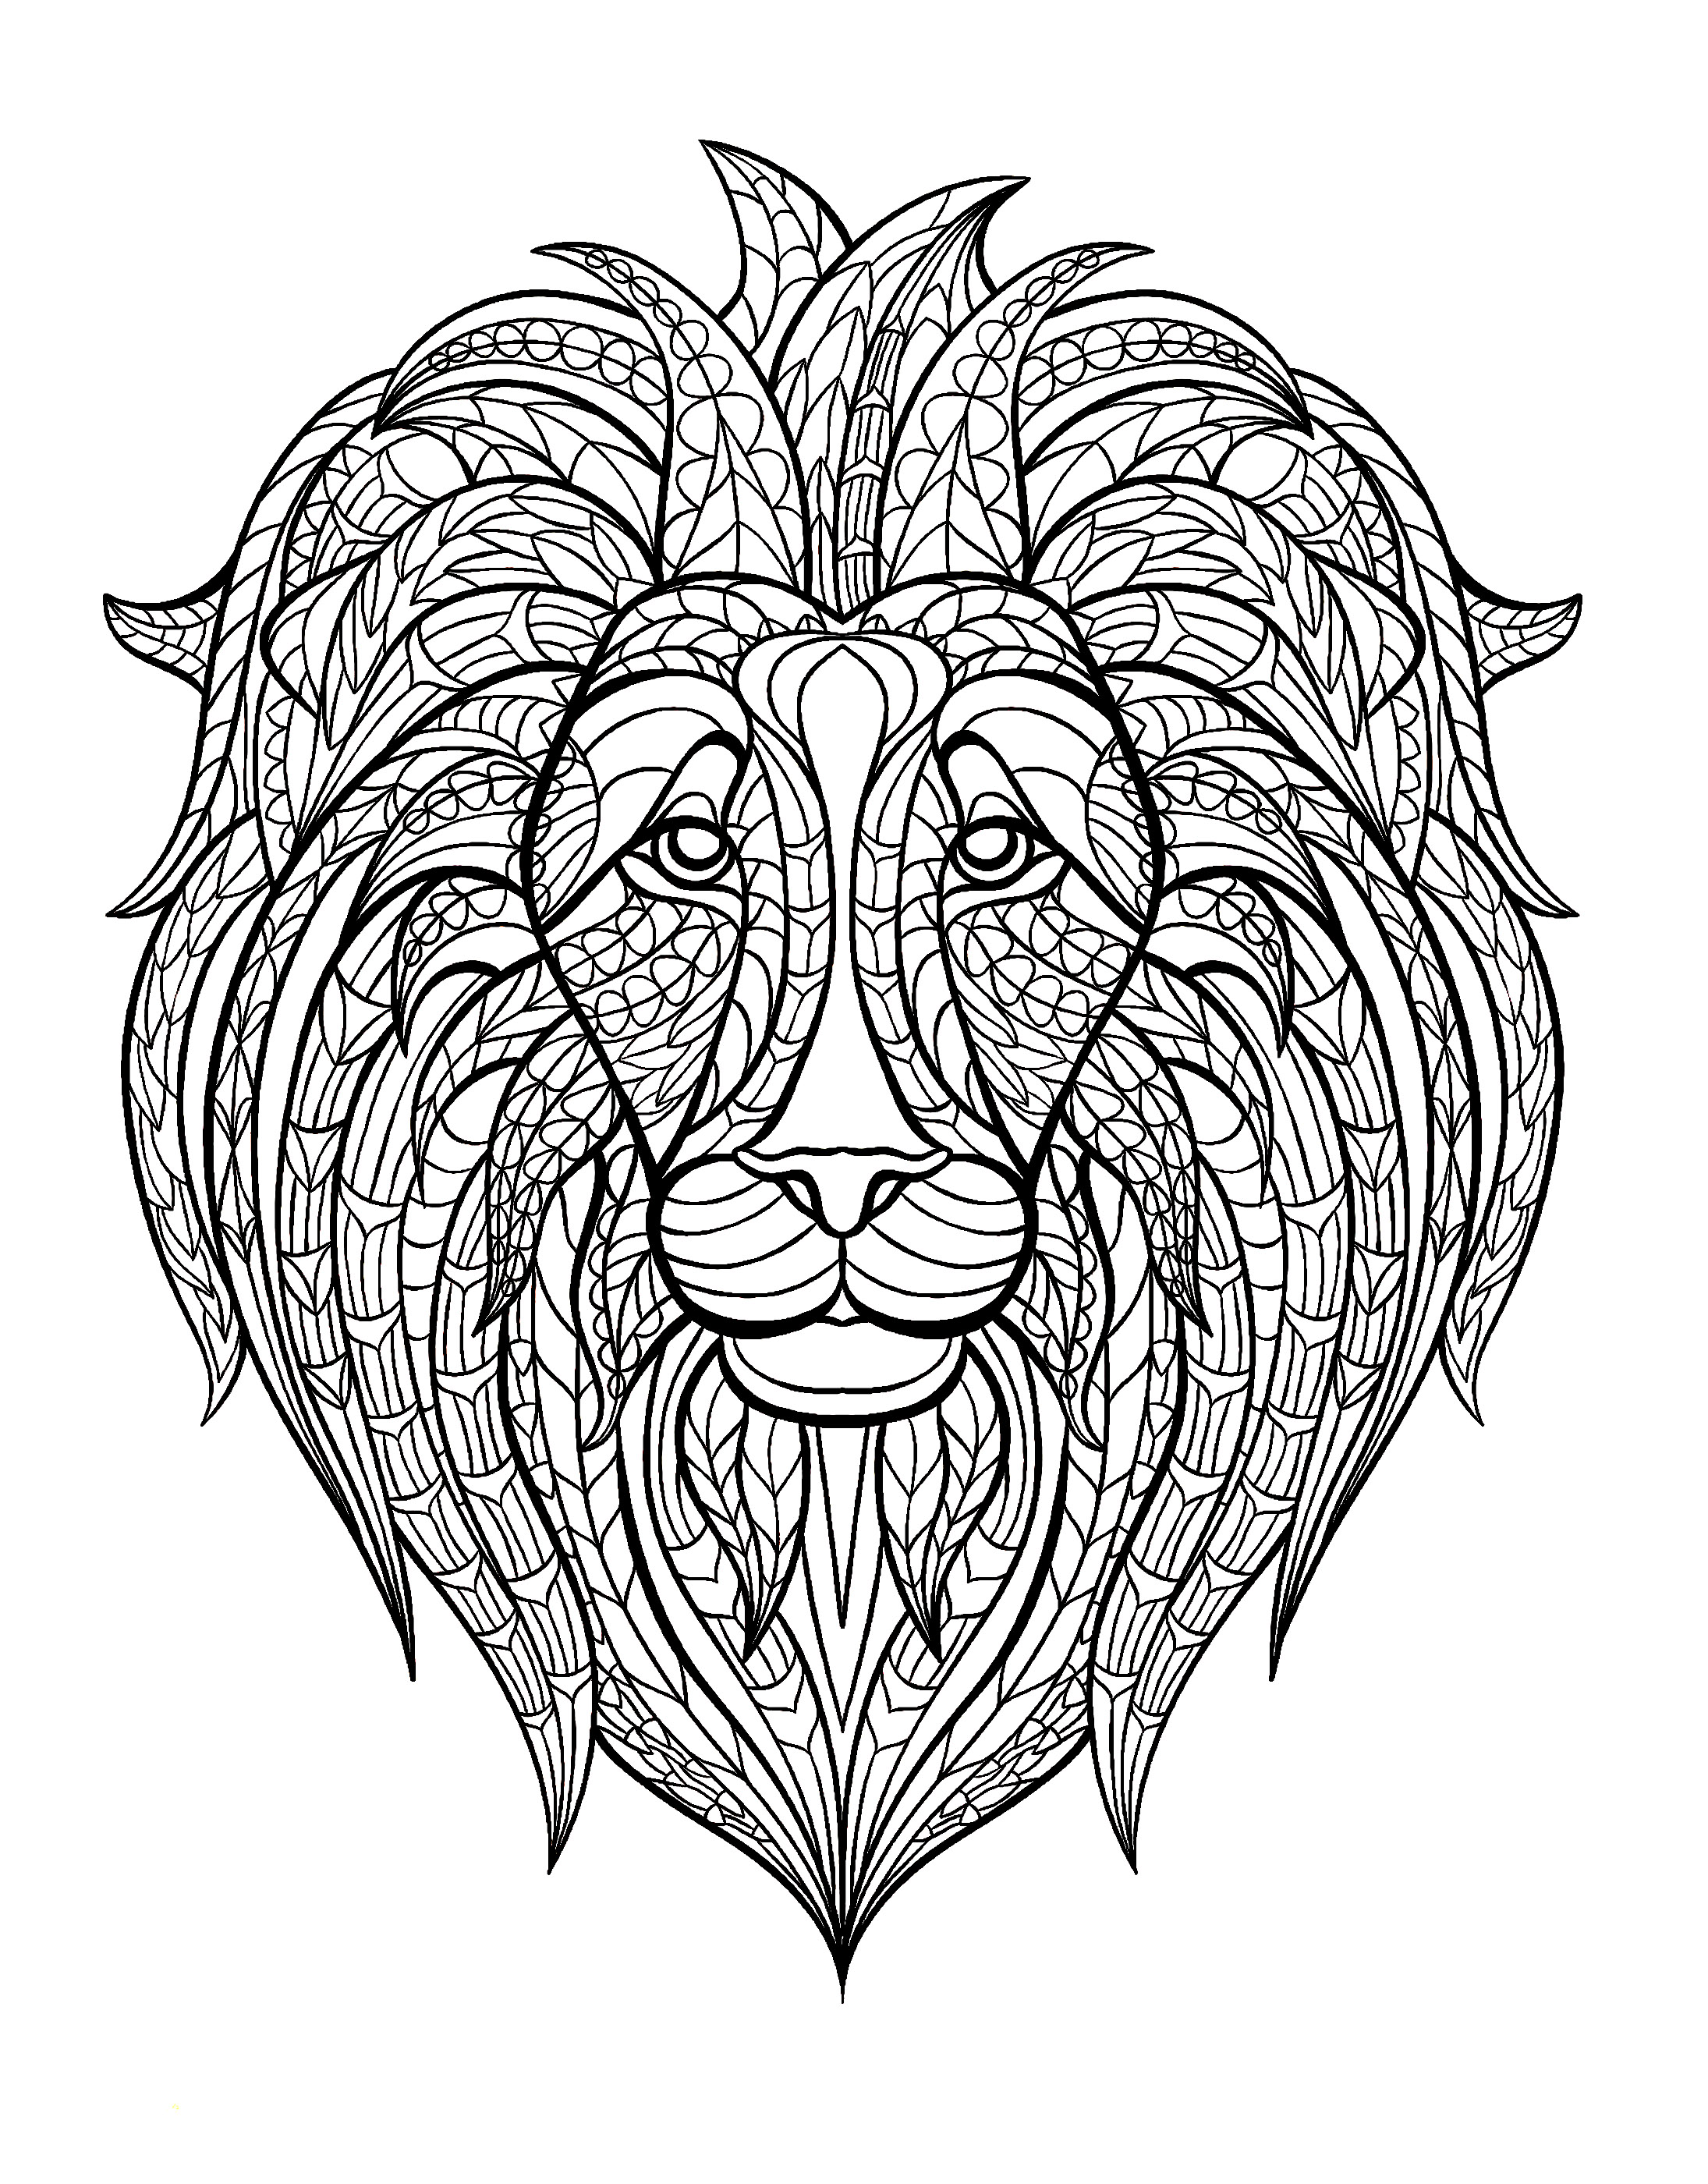 Lion Head Lions Coloring Pages For Adults Justcolor